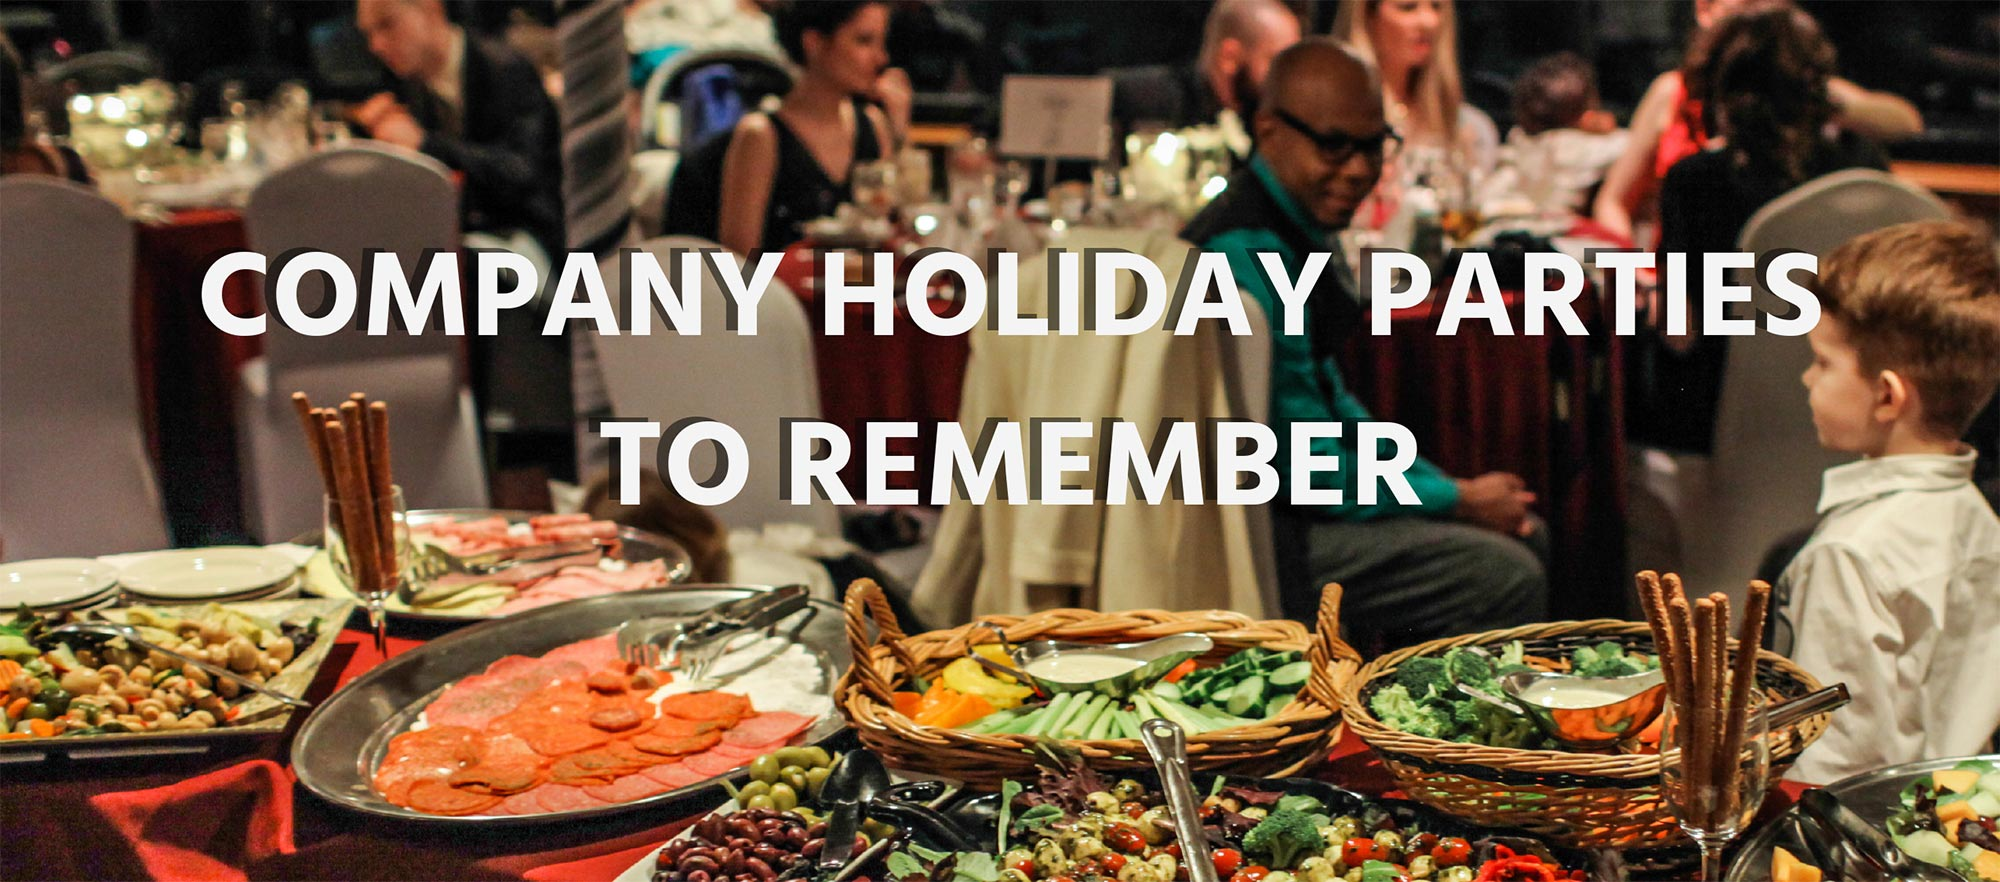 Request a Holiday Party Quote aboard the Skyline Princess